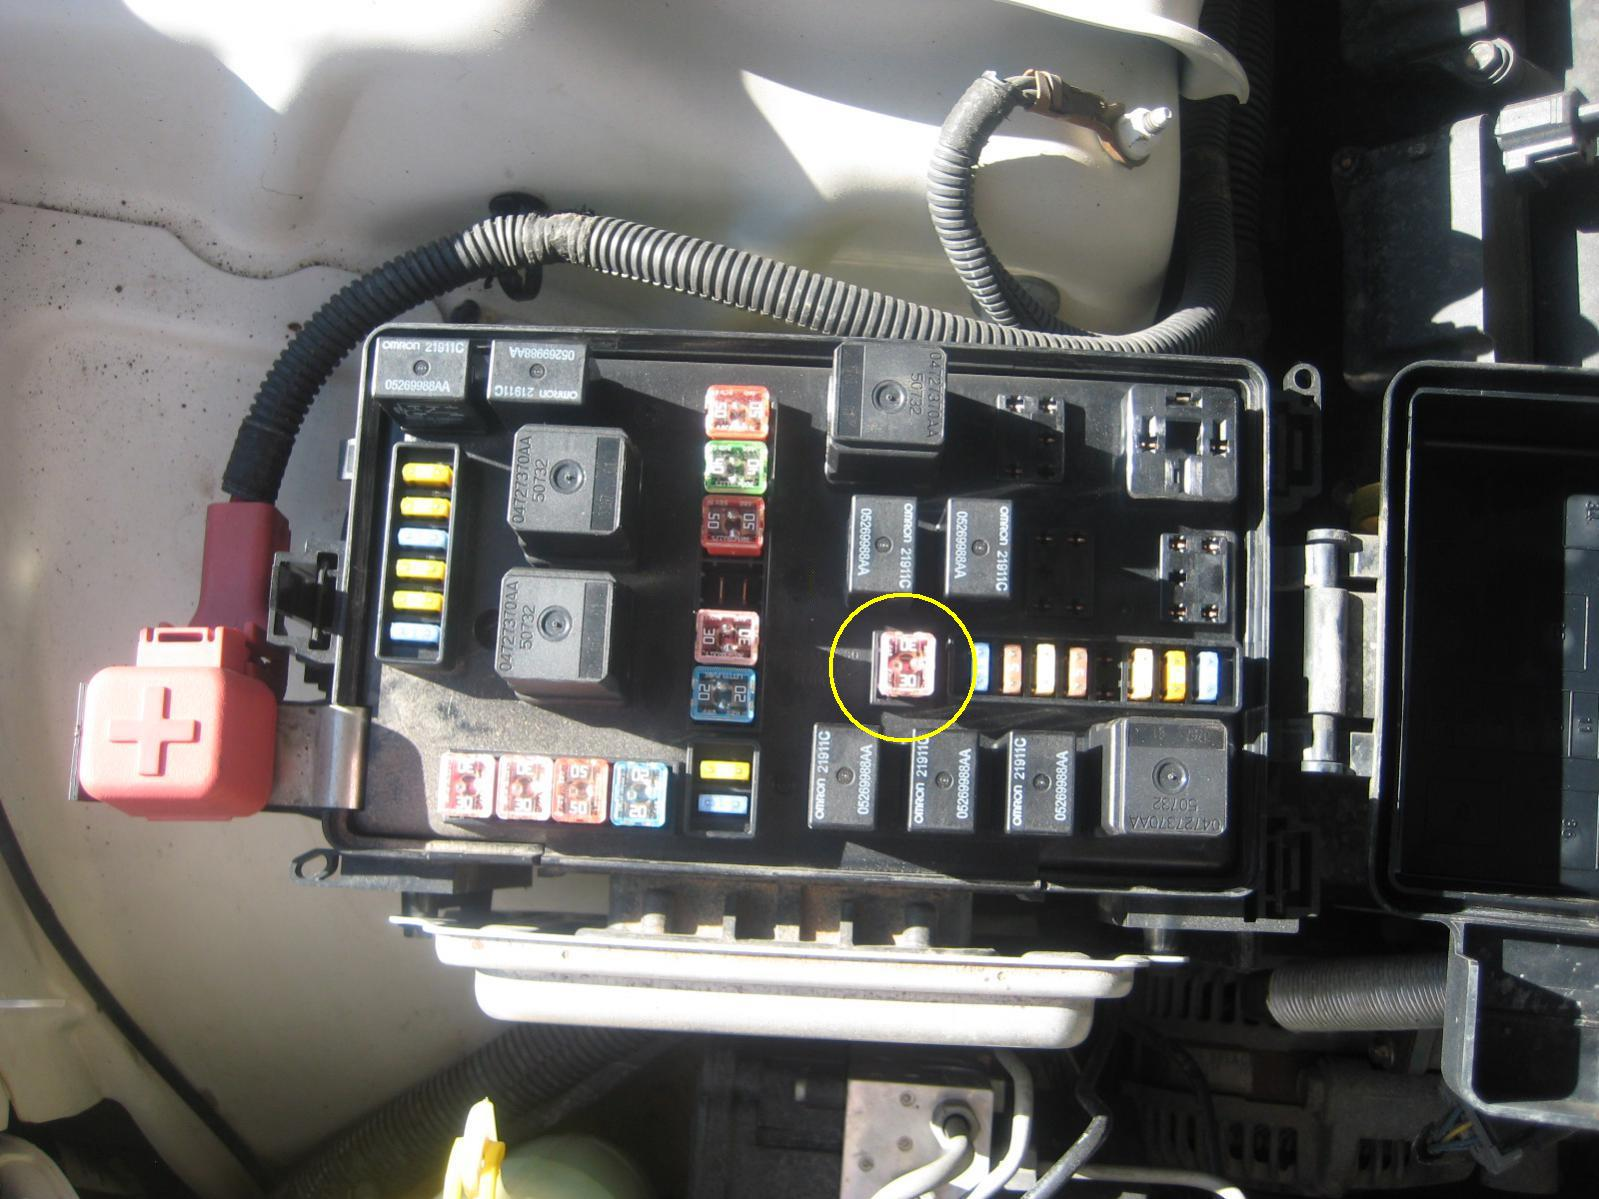 Ford Expedition Factory Radio Wiring Harness further 2010 Ford Transit Coolant Sensor Location besides Wiring Diagram For A 2007 Dodge Nitro in addition Saab 9 3 Throttle Position Sensor Location also 1966 Ford Mustang V6 Engine Diagram. on egr valve location on ford transit engine